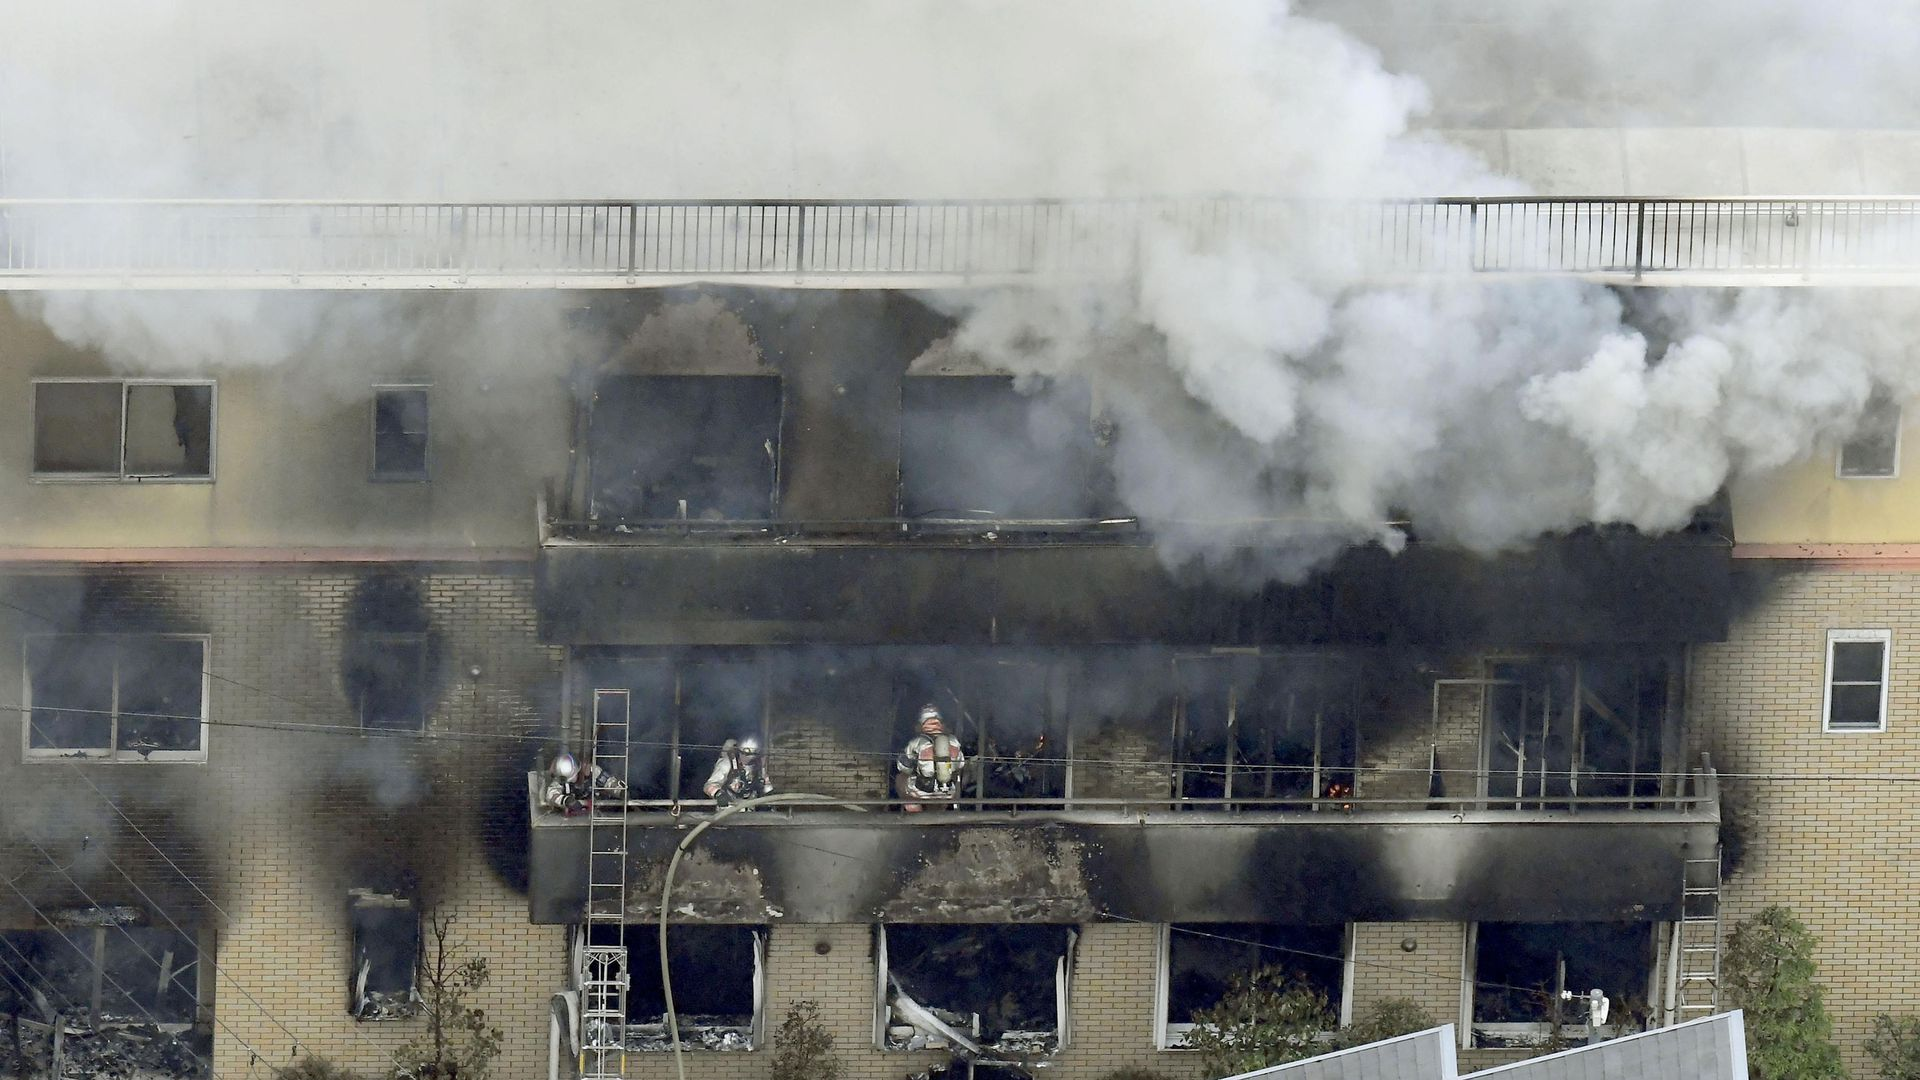 Firefighters battle a blaze at Kyoto Animation in Japan.